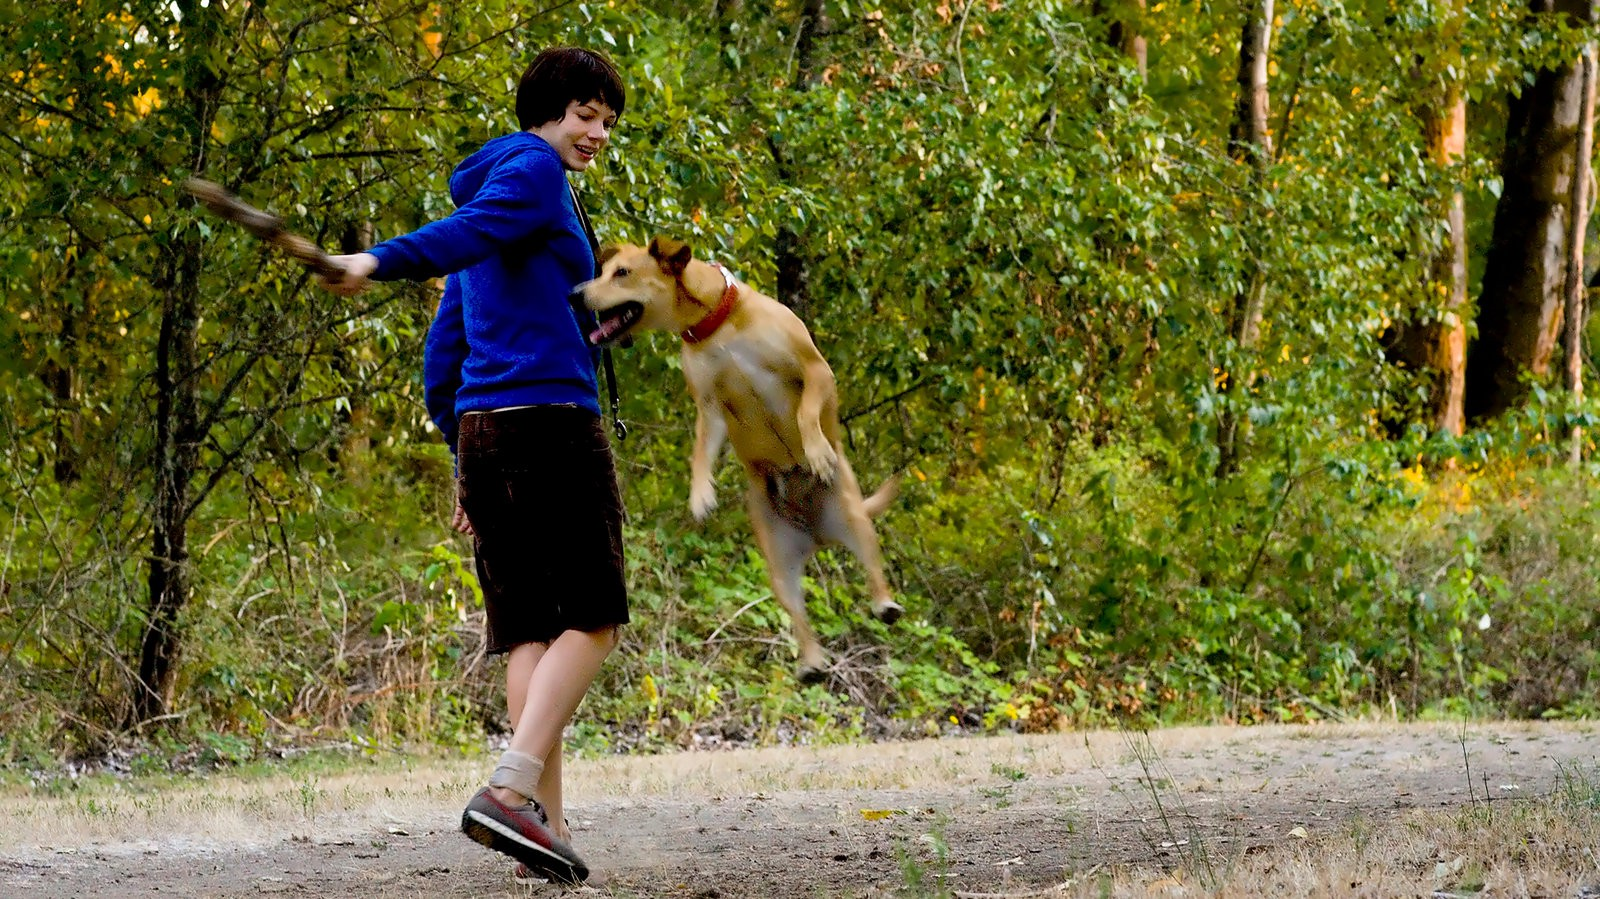 A woman plays fetch with her dog.